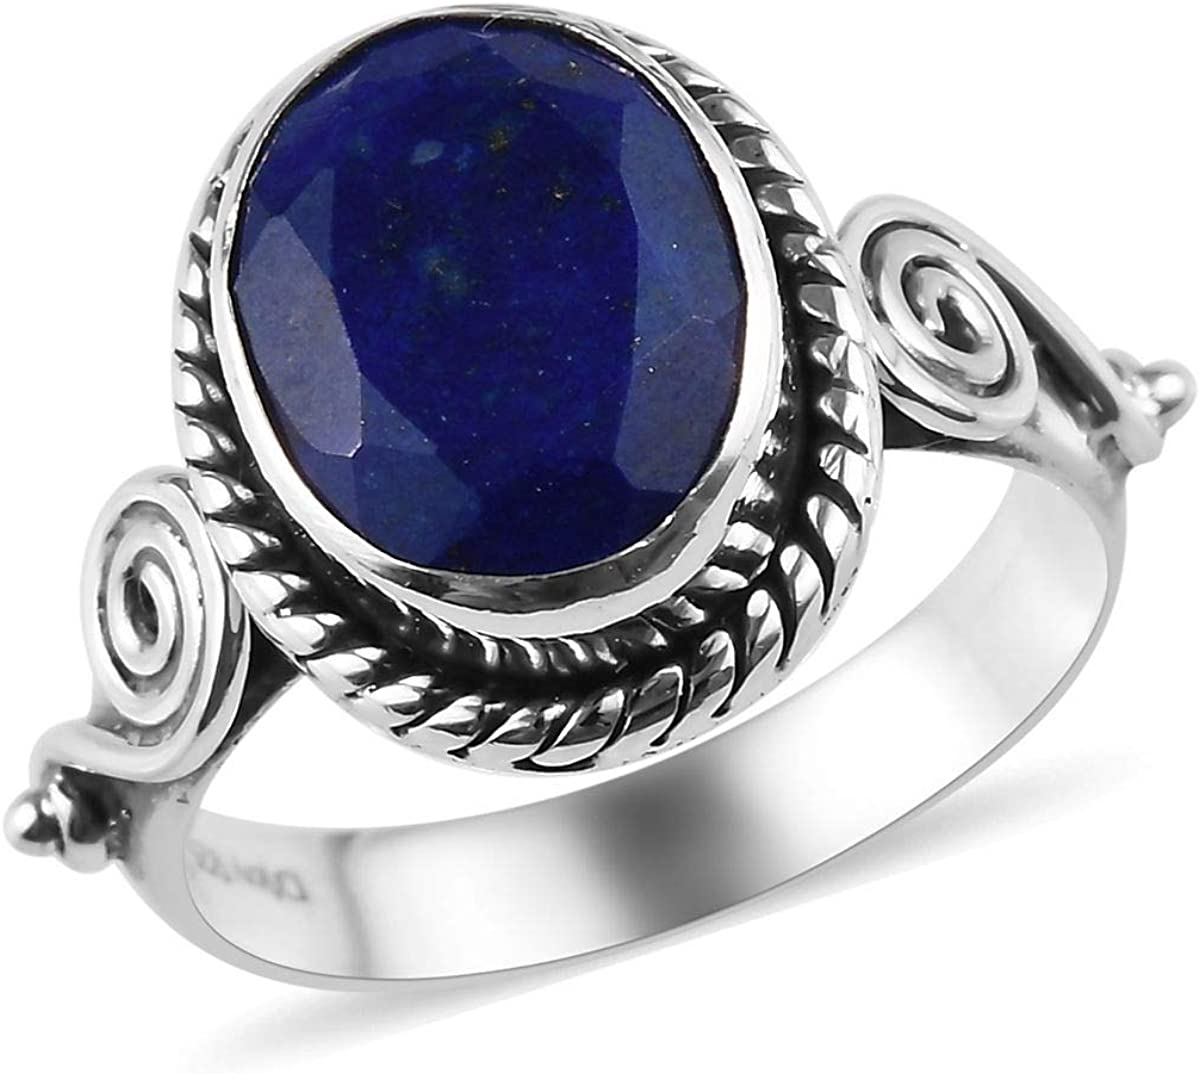 925 Sterling Silver Oval Lapis Lazuli Oxidized Engagement Ring for Women Handmade Fashion Jewelry Cttw 2